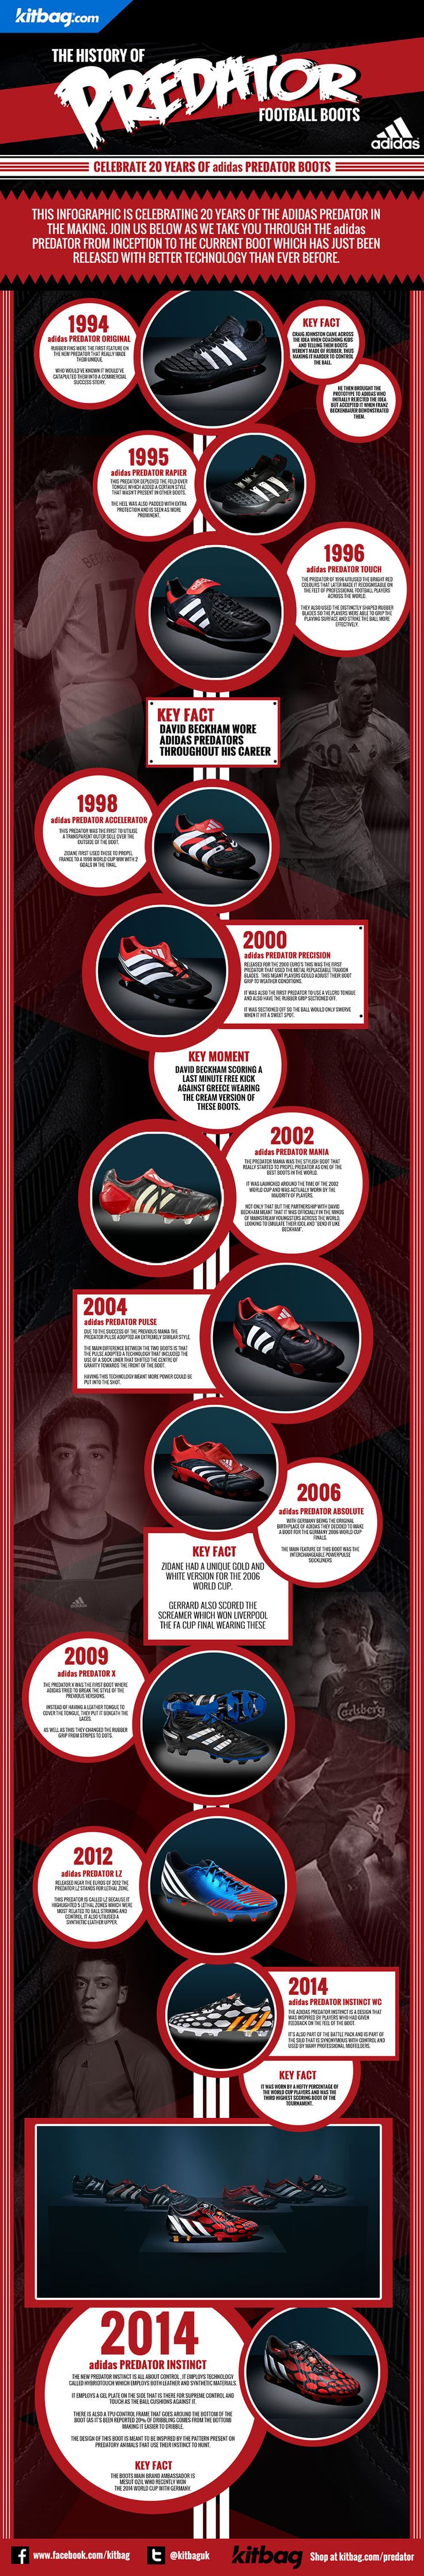 Celebrate the 20 year history of the adidas Predator with Kitbag.com.